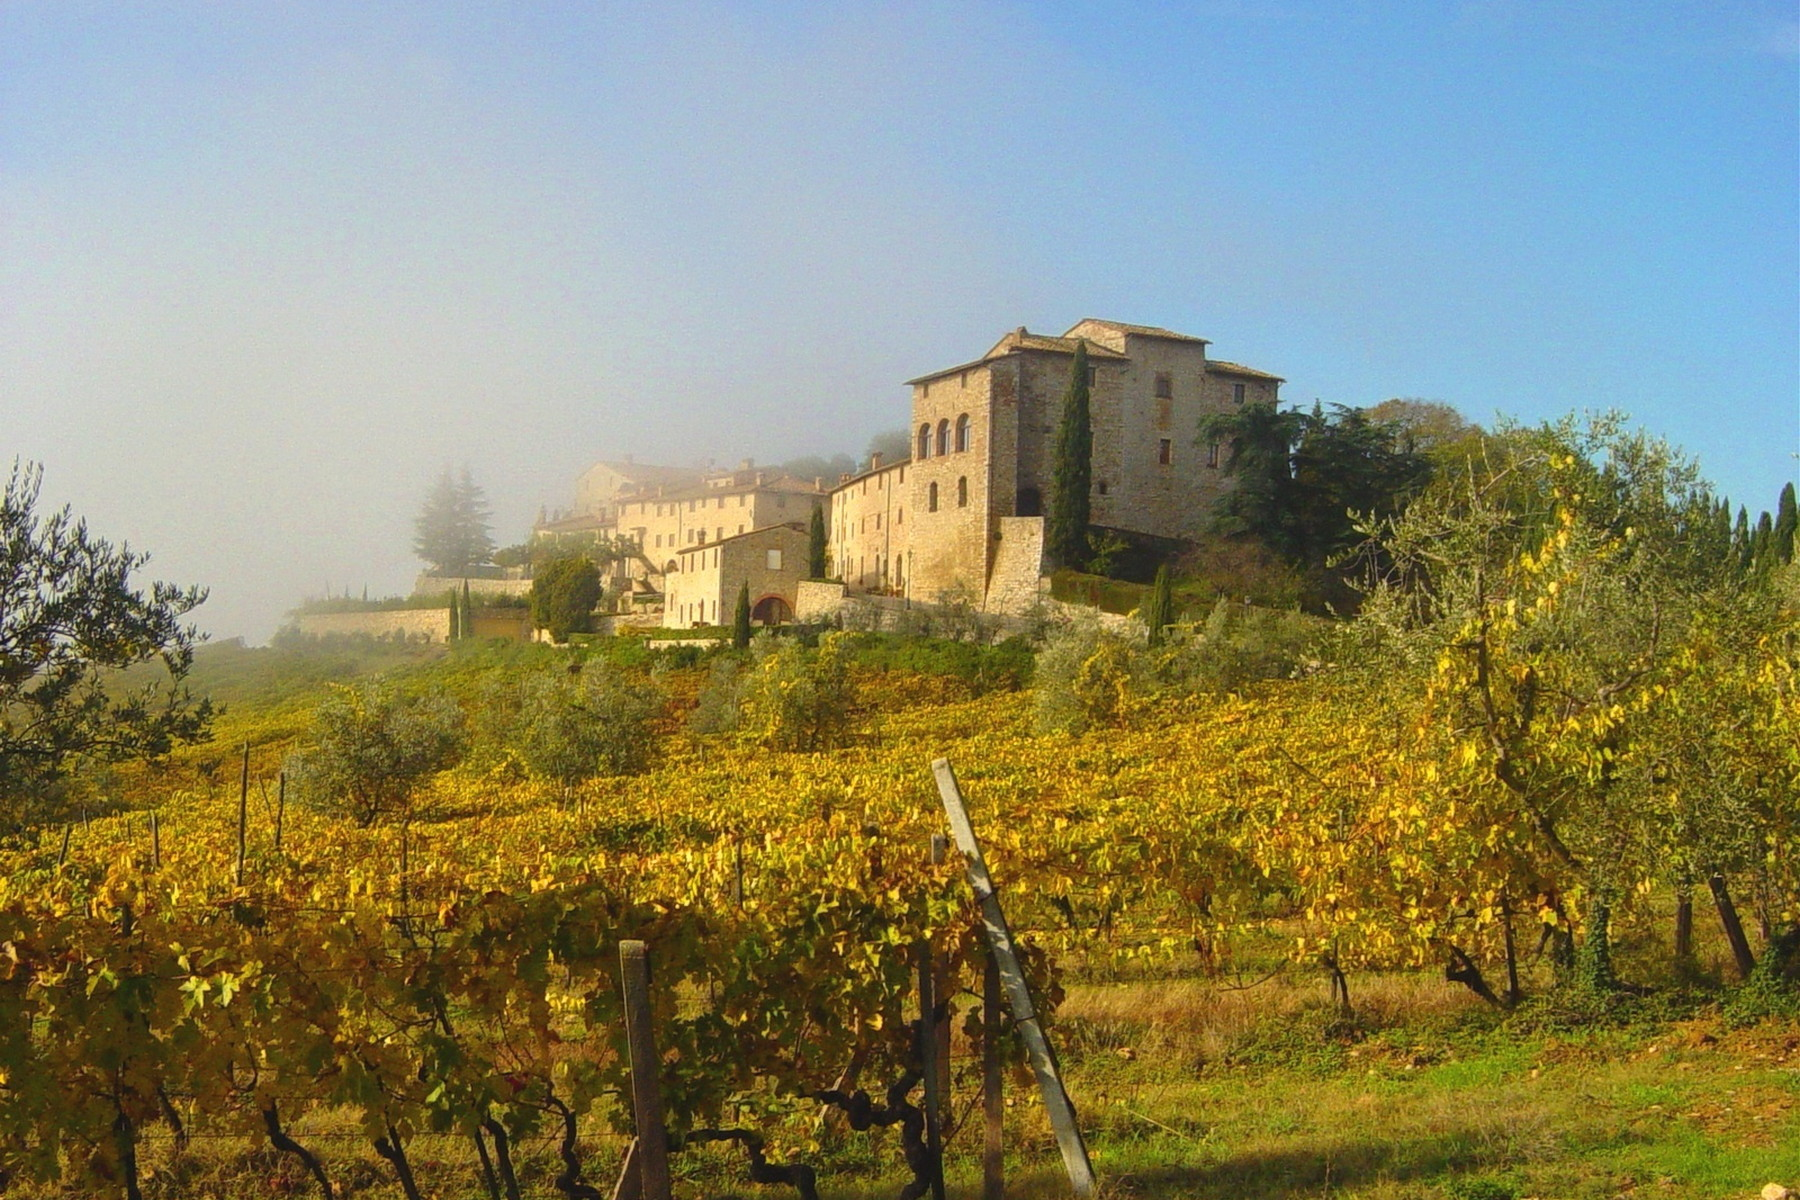 Single Family Home for Sale at Historic castle in Chianti with vineyard Gaiole In Chianti, Siena 53013 Italy